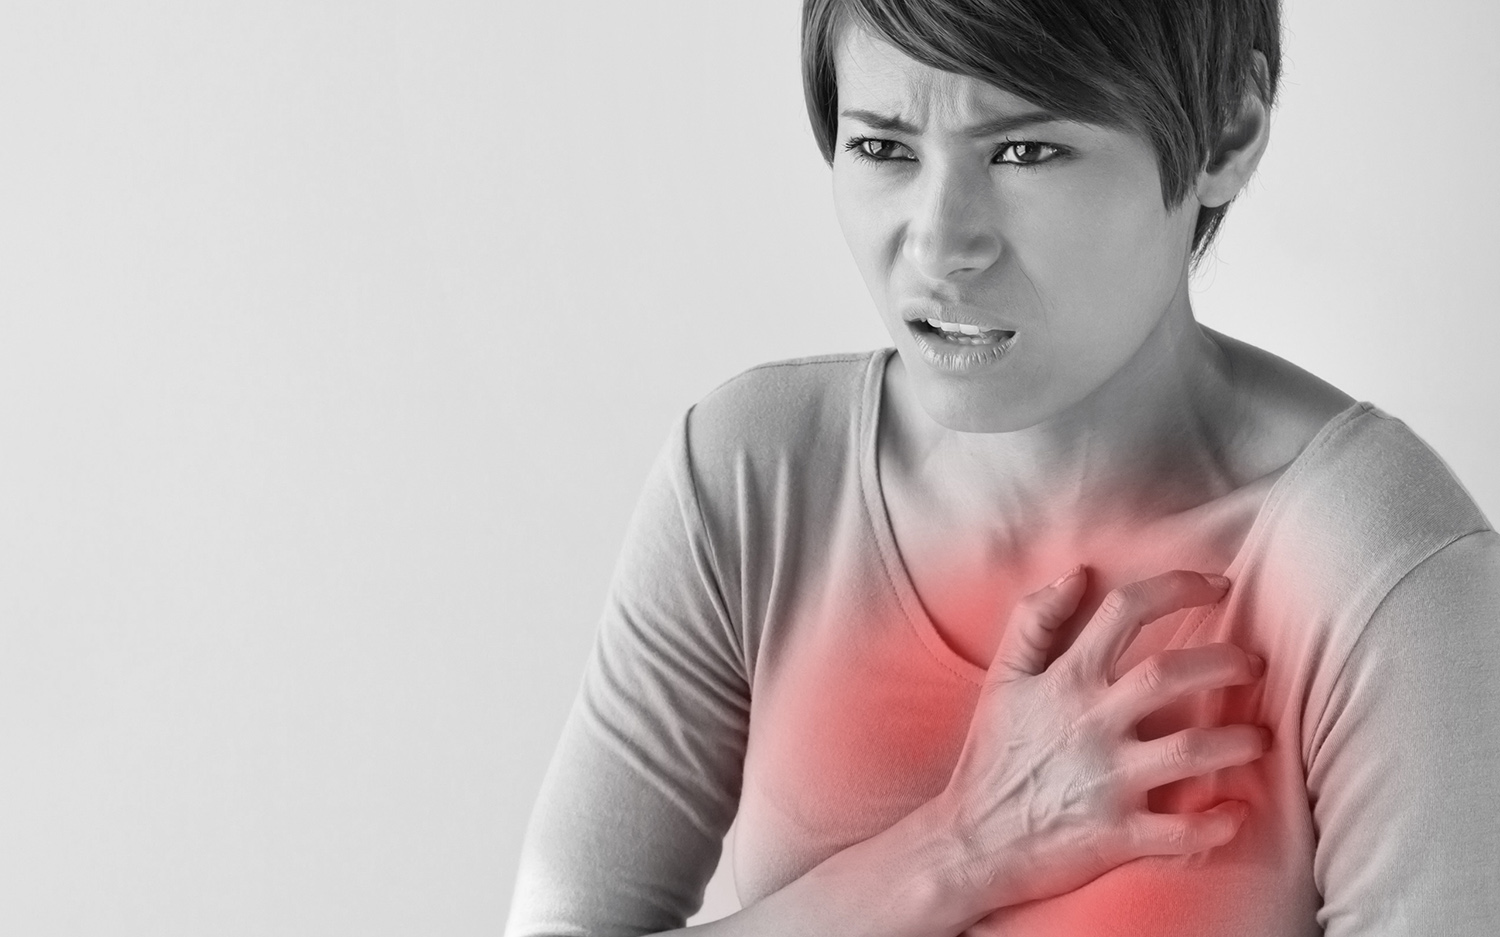 Chest Pains in Women Could Be Undiagnosed Heart Attacks | Cedars-Sinai